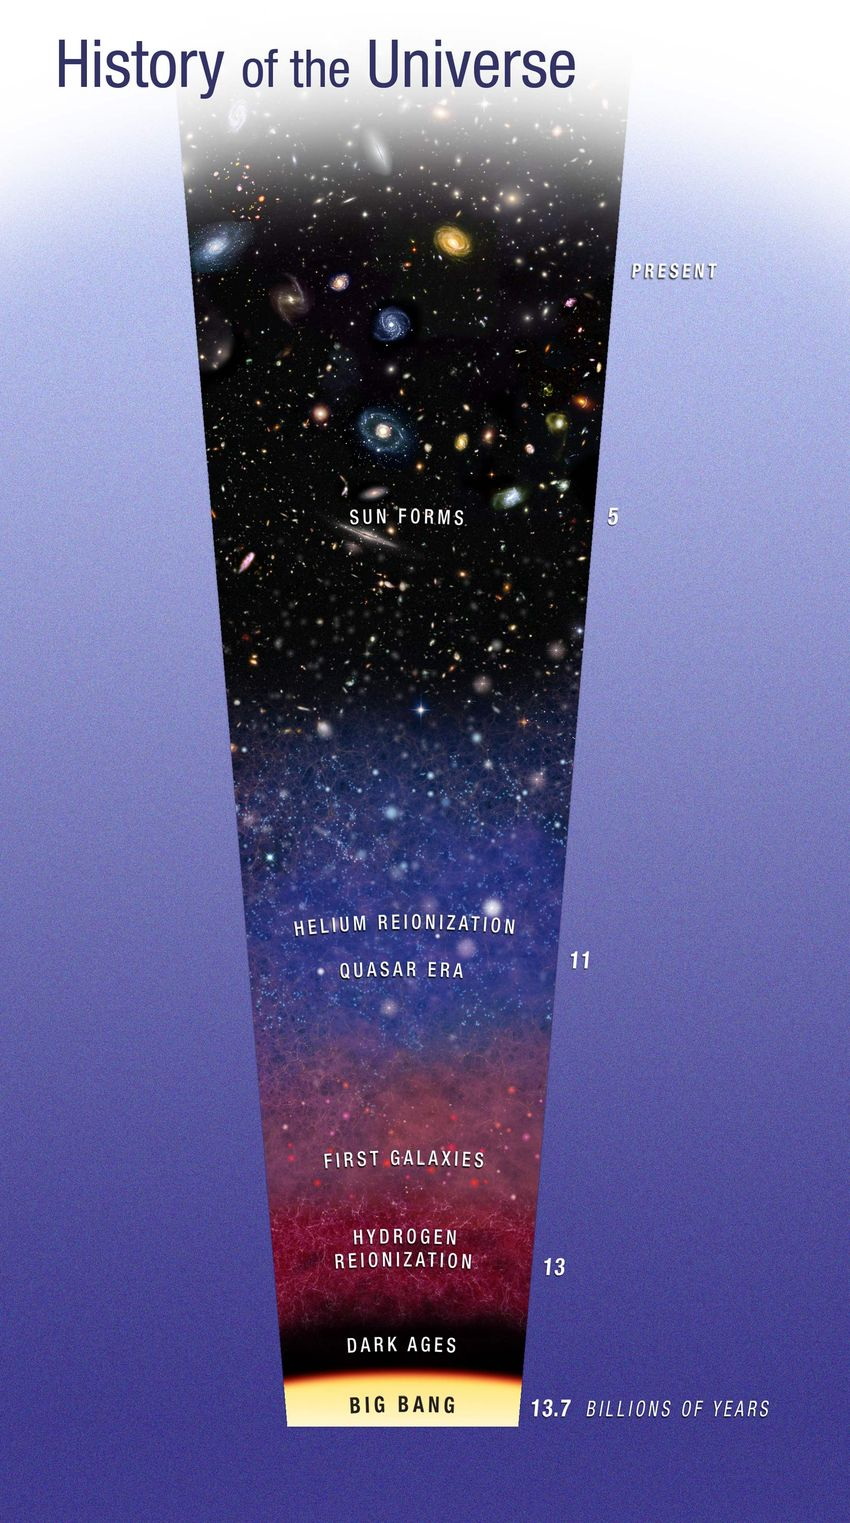 the structure of the universe essay The cosmic origins spectrograph is designed to study the composition and large-scale structure of the universe this investigation of helium in the early universe is one of many ways that hubble has used distant quasars as lighthouses.